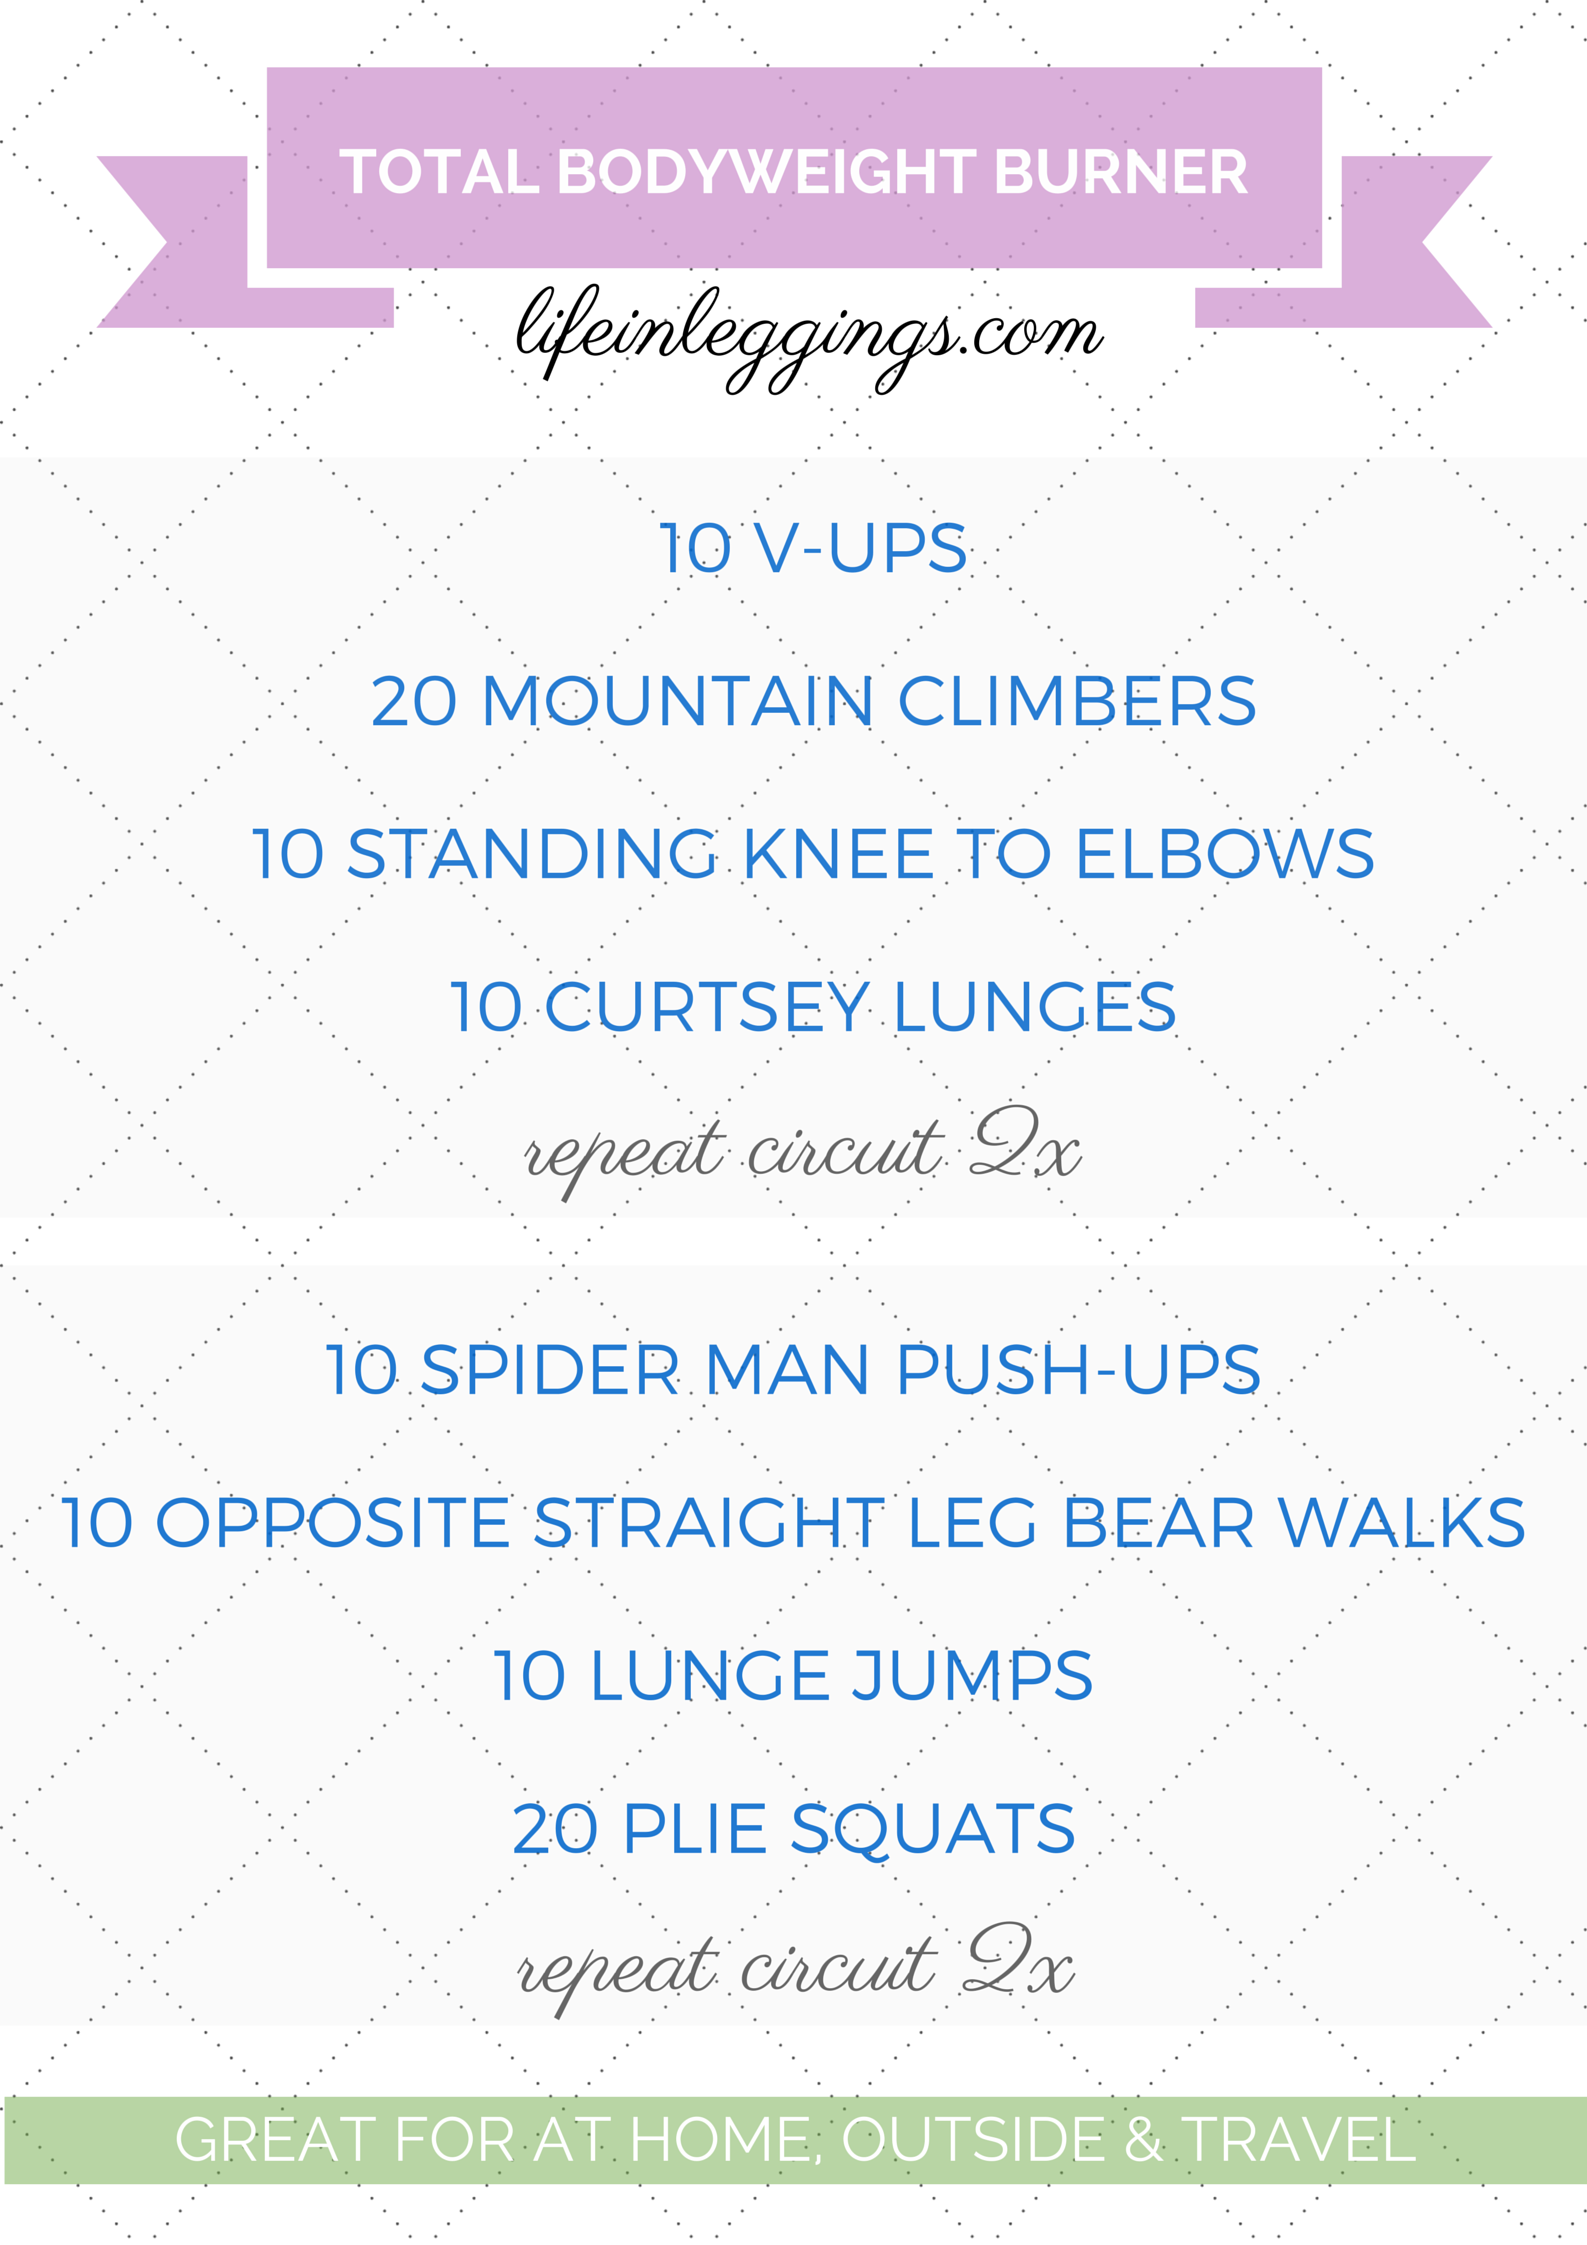 Total Bodyweight Burner Travel Workout